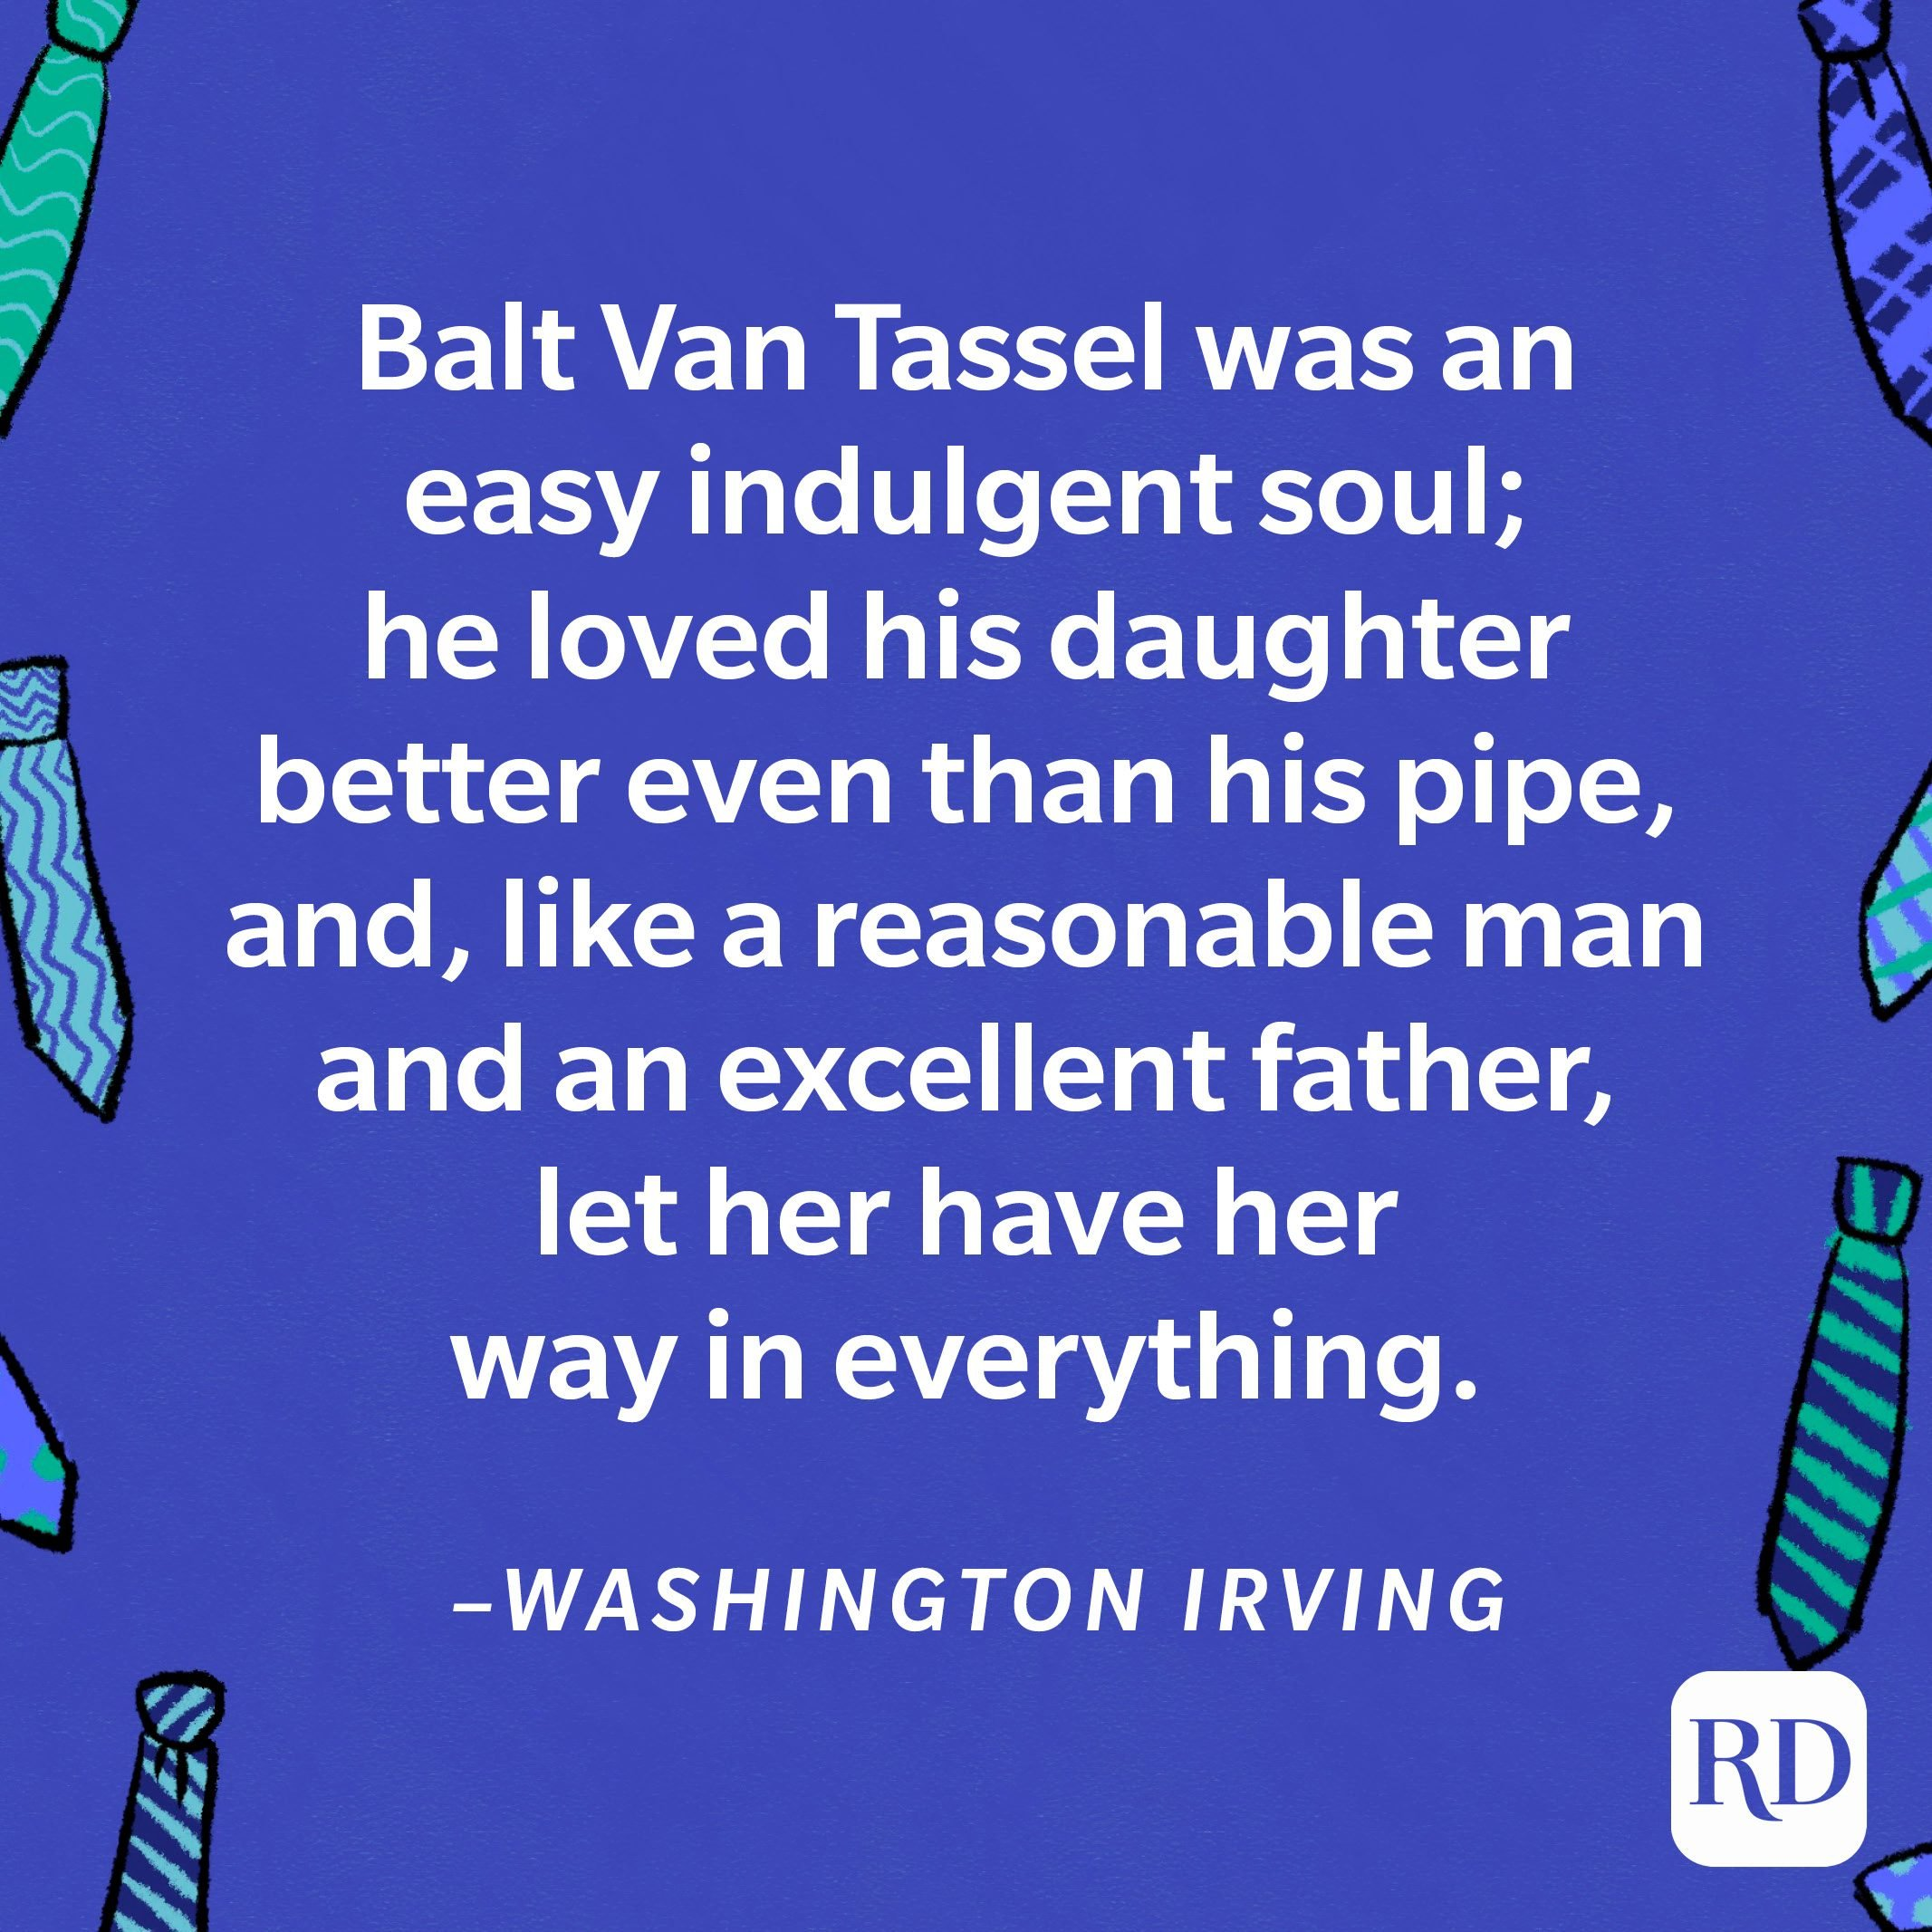 """""""Balt Van Tassel was an easy indulgent soul; he loved his daughter better even than his pipe, and, like a reasonable man and an excellent father, let her have her way in everything.""""—Washington Irving 22"""